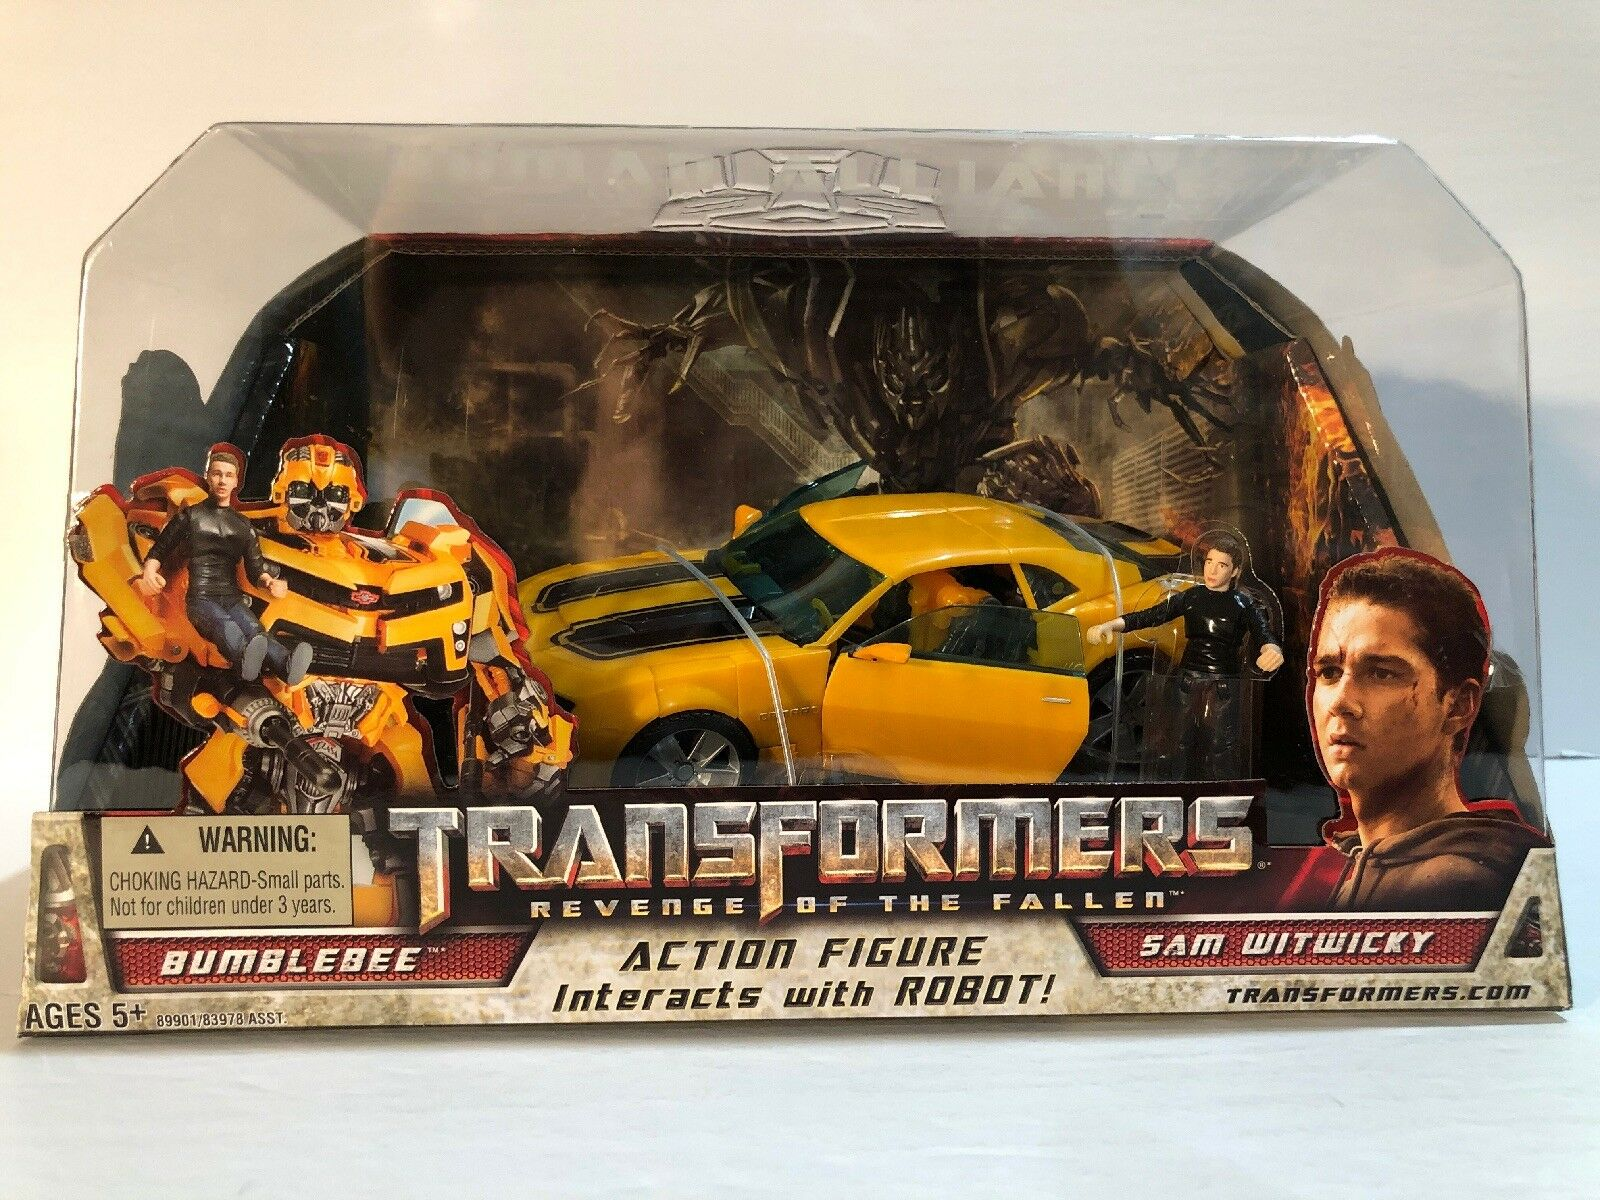 Hasbro Transformers 2 Revenge of the Fallen Human Alliance  Bumble Bee with Sam